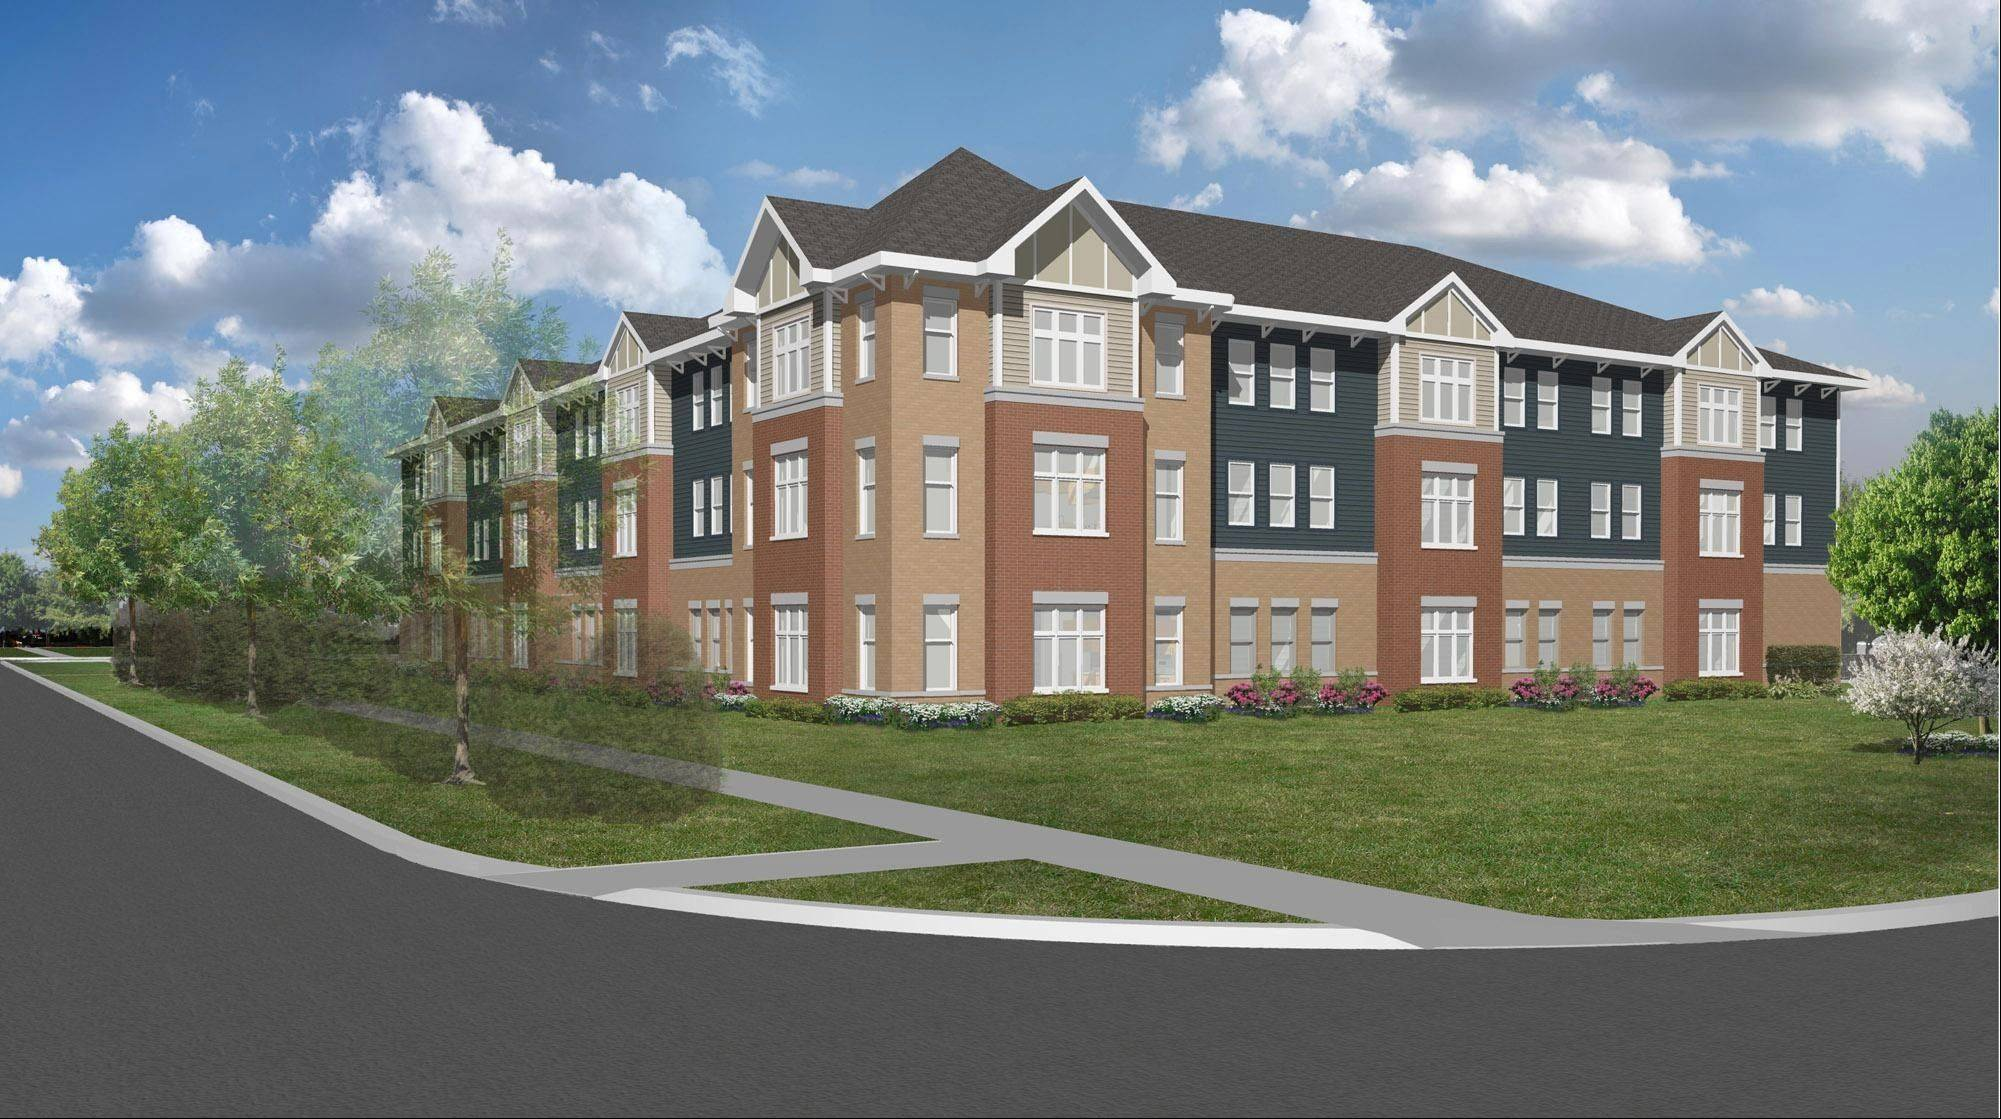 Catherine Alice Gardens is a proposed affordable permanent supportive housing complex in Palatine for people with disabilities and mental illness.